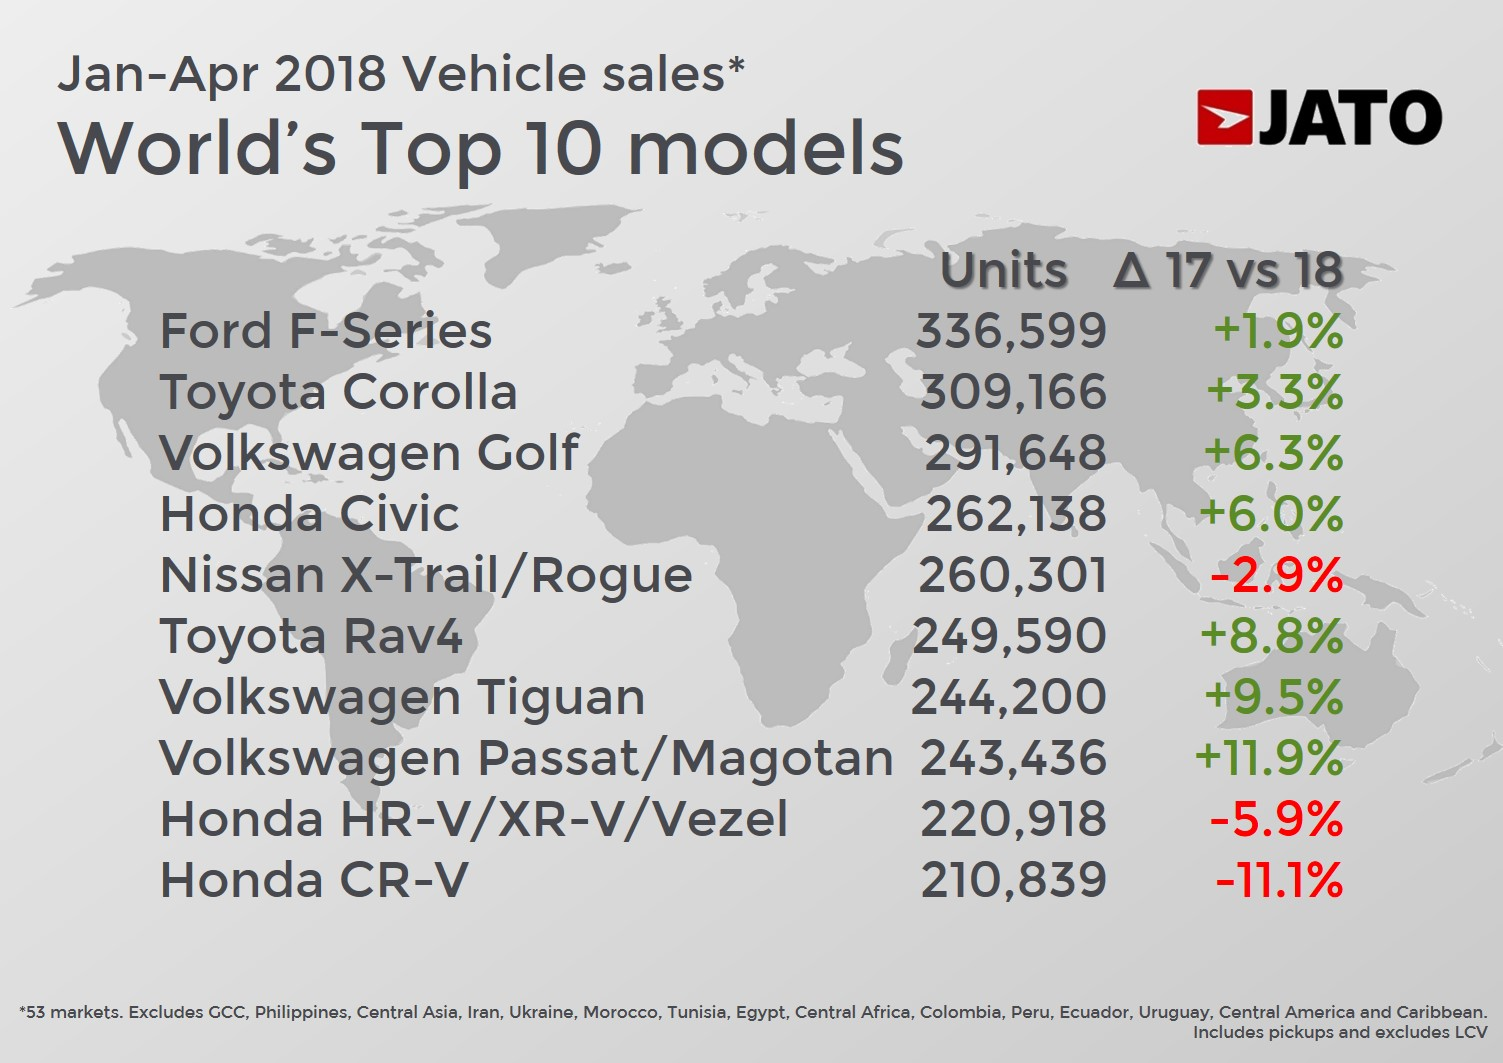 These were the world's top selling cars through April 2018 - JATO